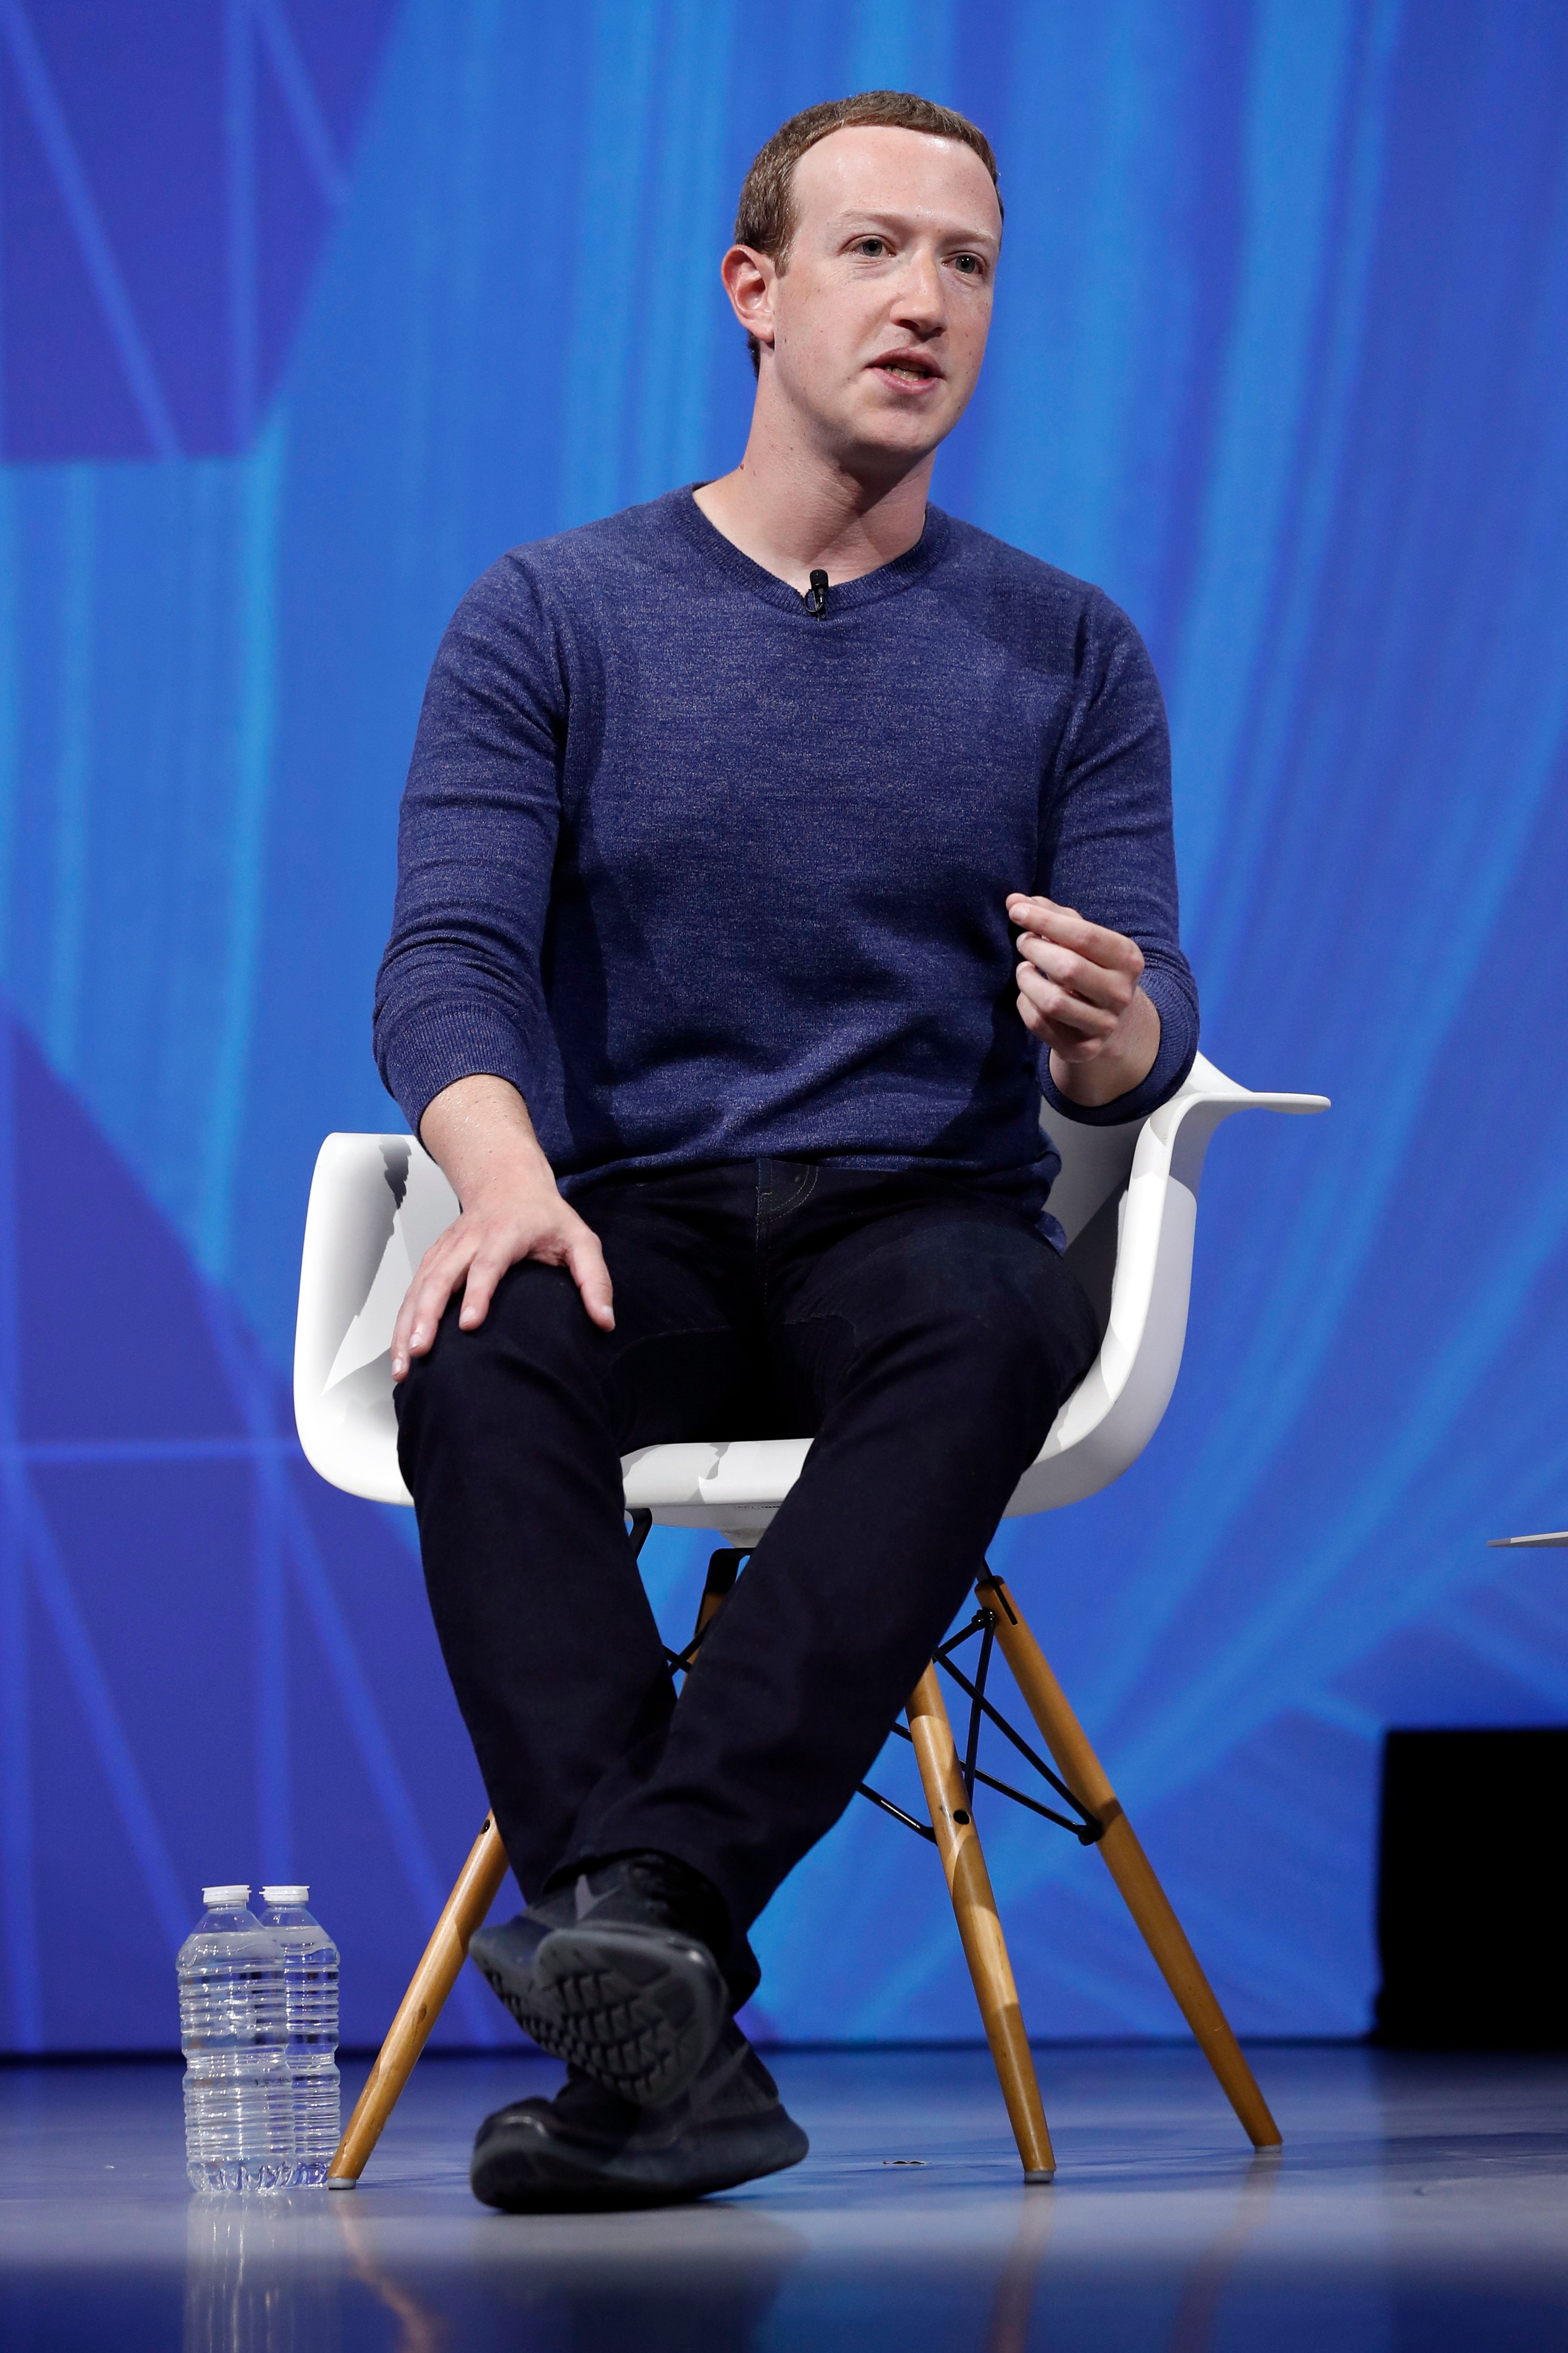 Mark ZuckerbergVivaTech fair in Paris, France - 24 May 2018Facebook CEO Mark Zuckerberg speaks during the VivaTech fair in Paris, France, 24 May 2018. The annual commercial convention runs from the 24 to 26 May.